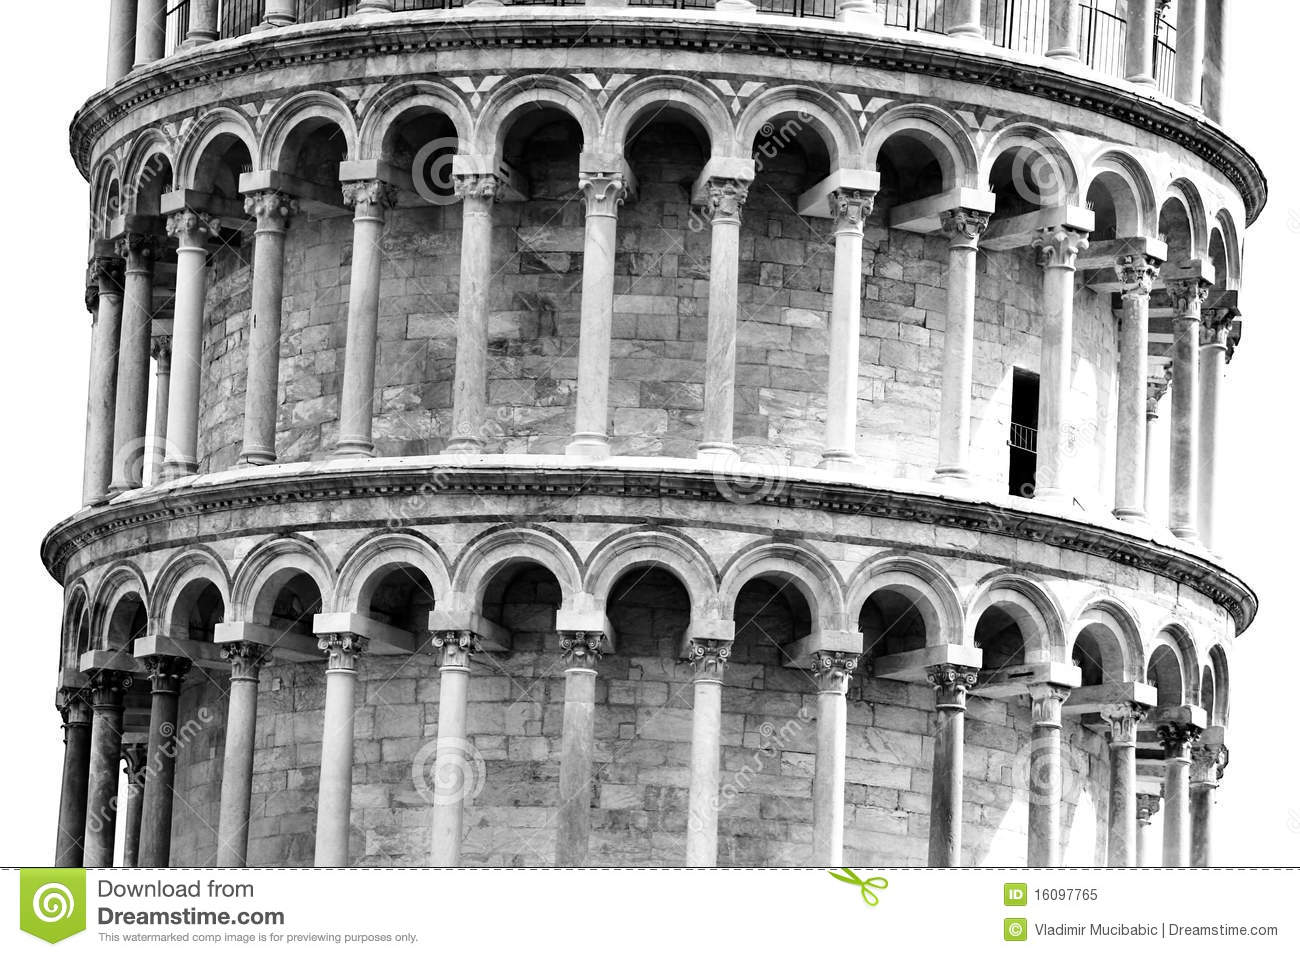 Leaning tower in Pisa, Tuscany, Italy